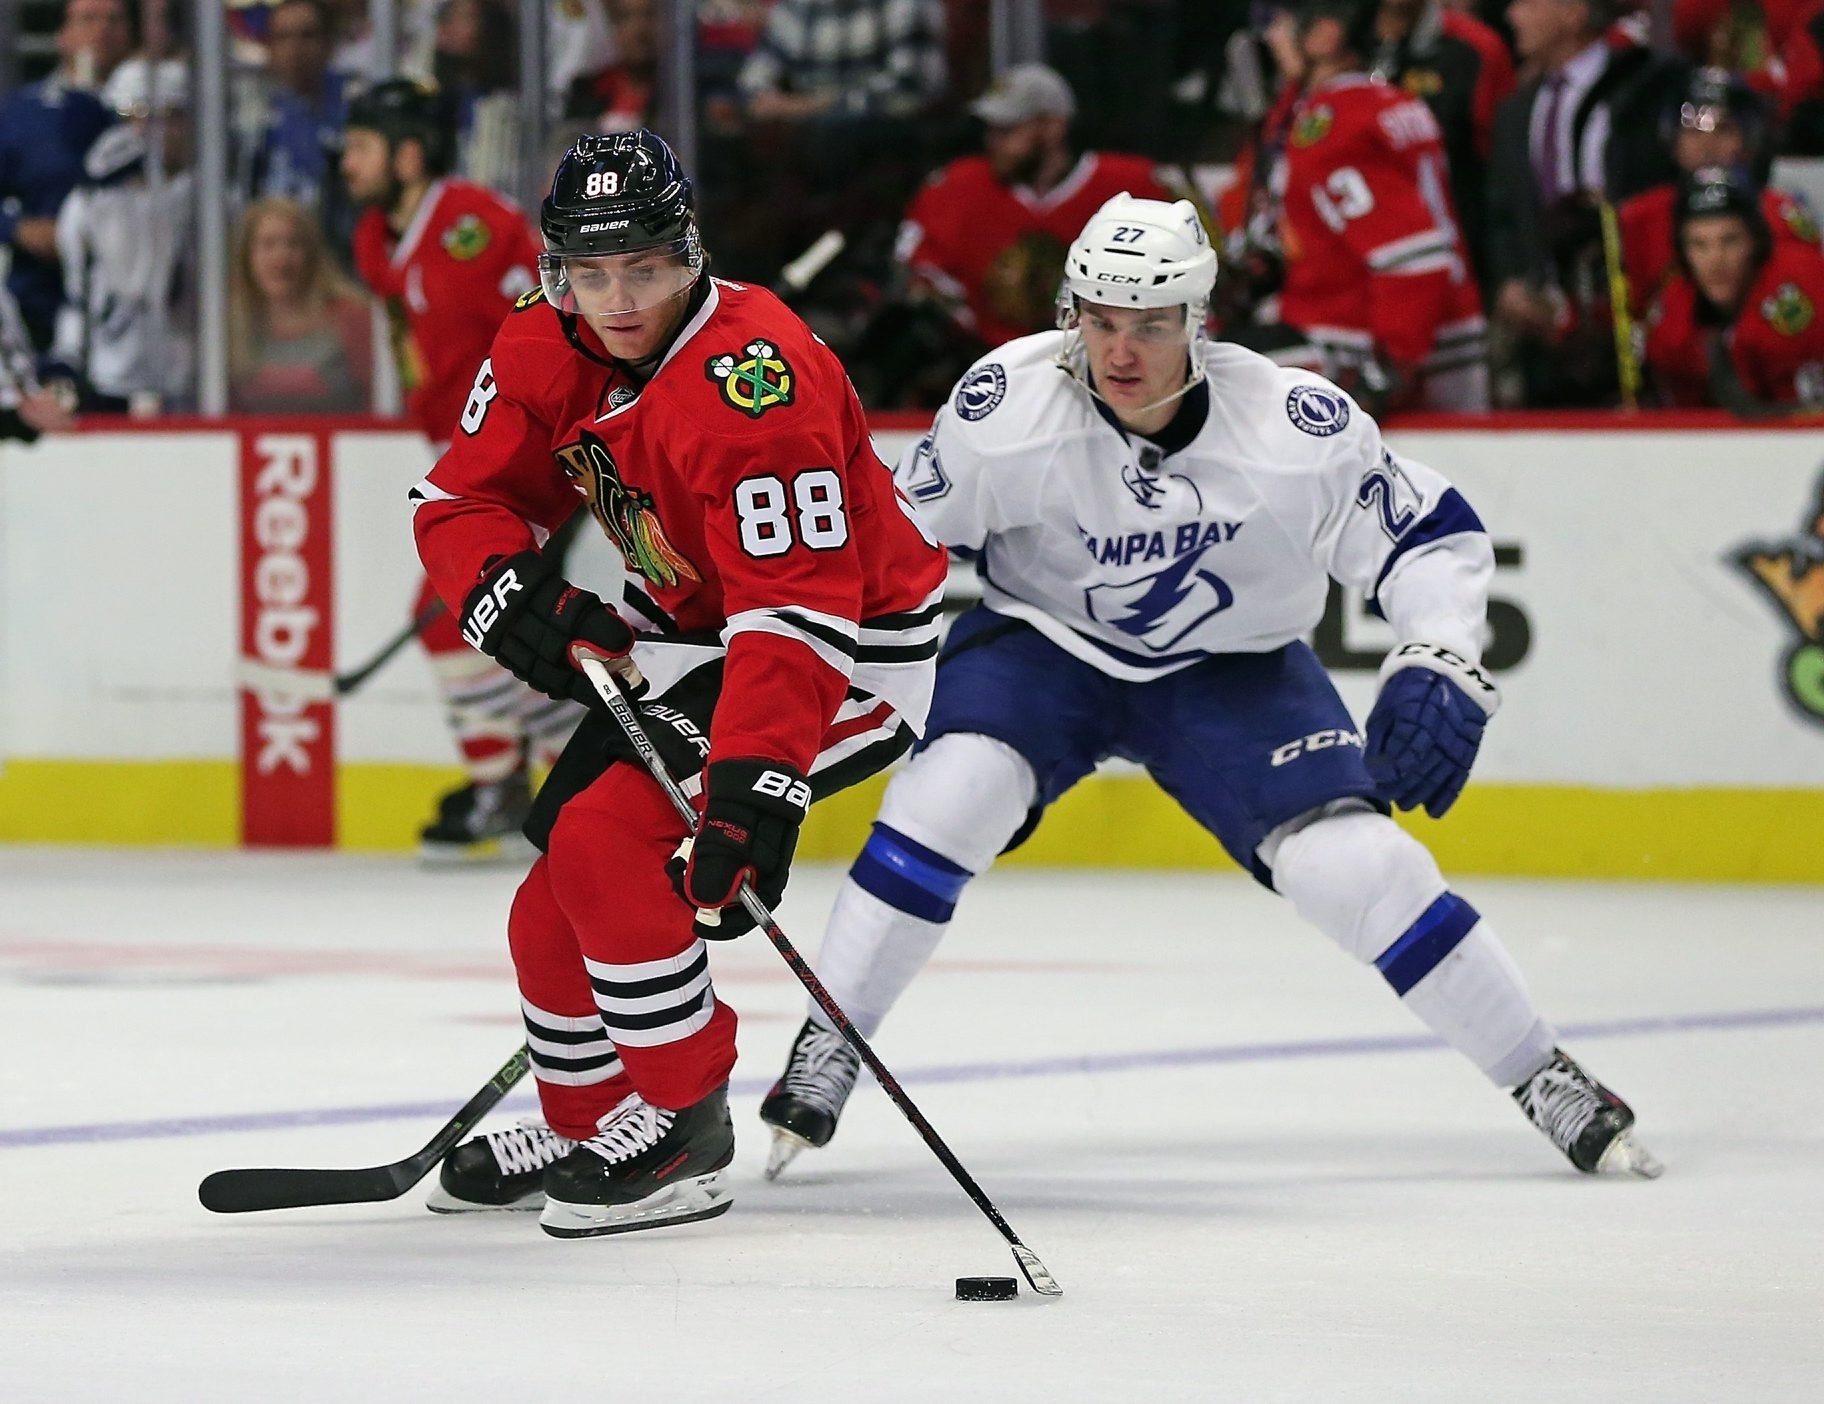 Patrick Kane of the Blackhawks (88) has some new linemates as Chicago tries to find a combination among its forwards that will help get the team going again.